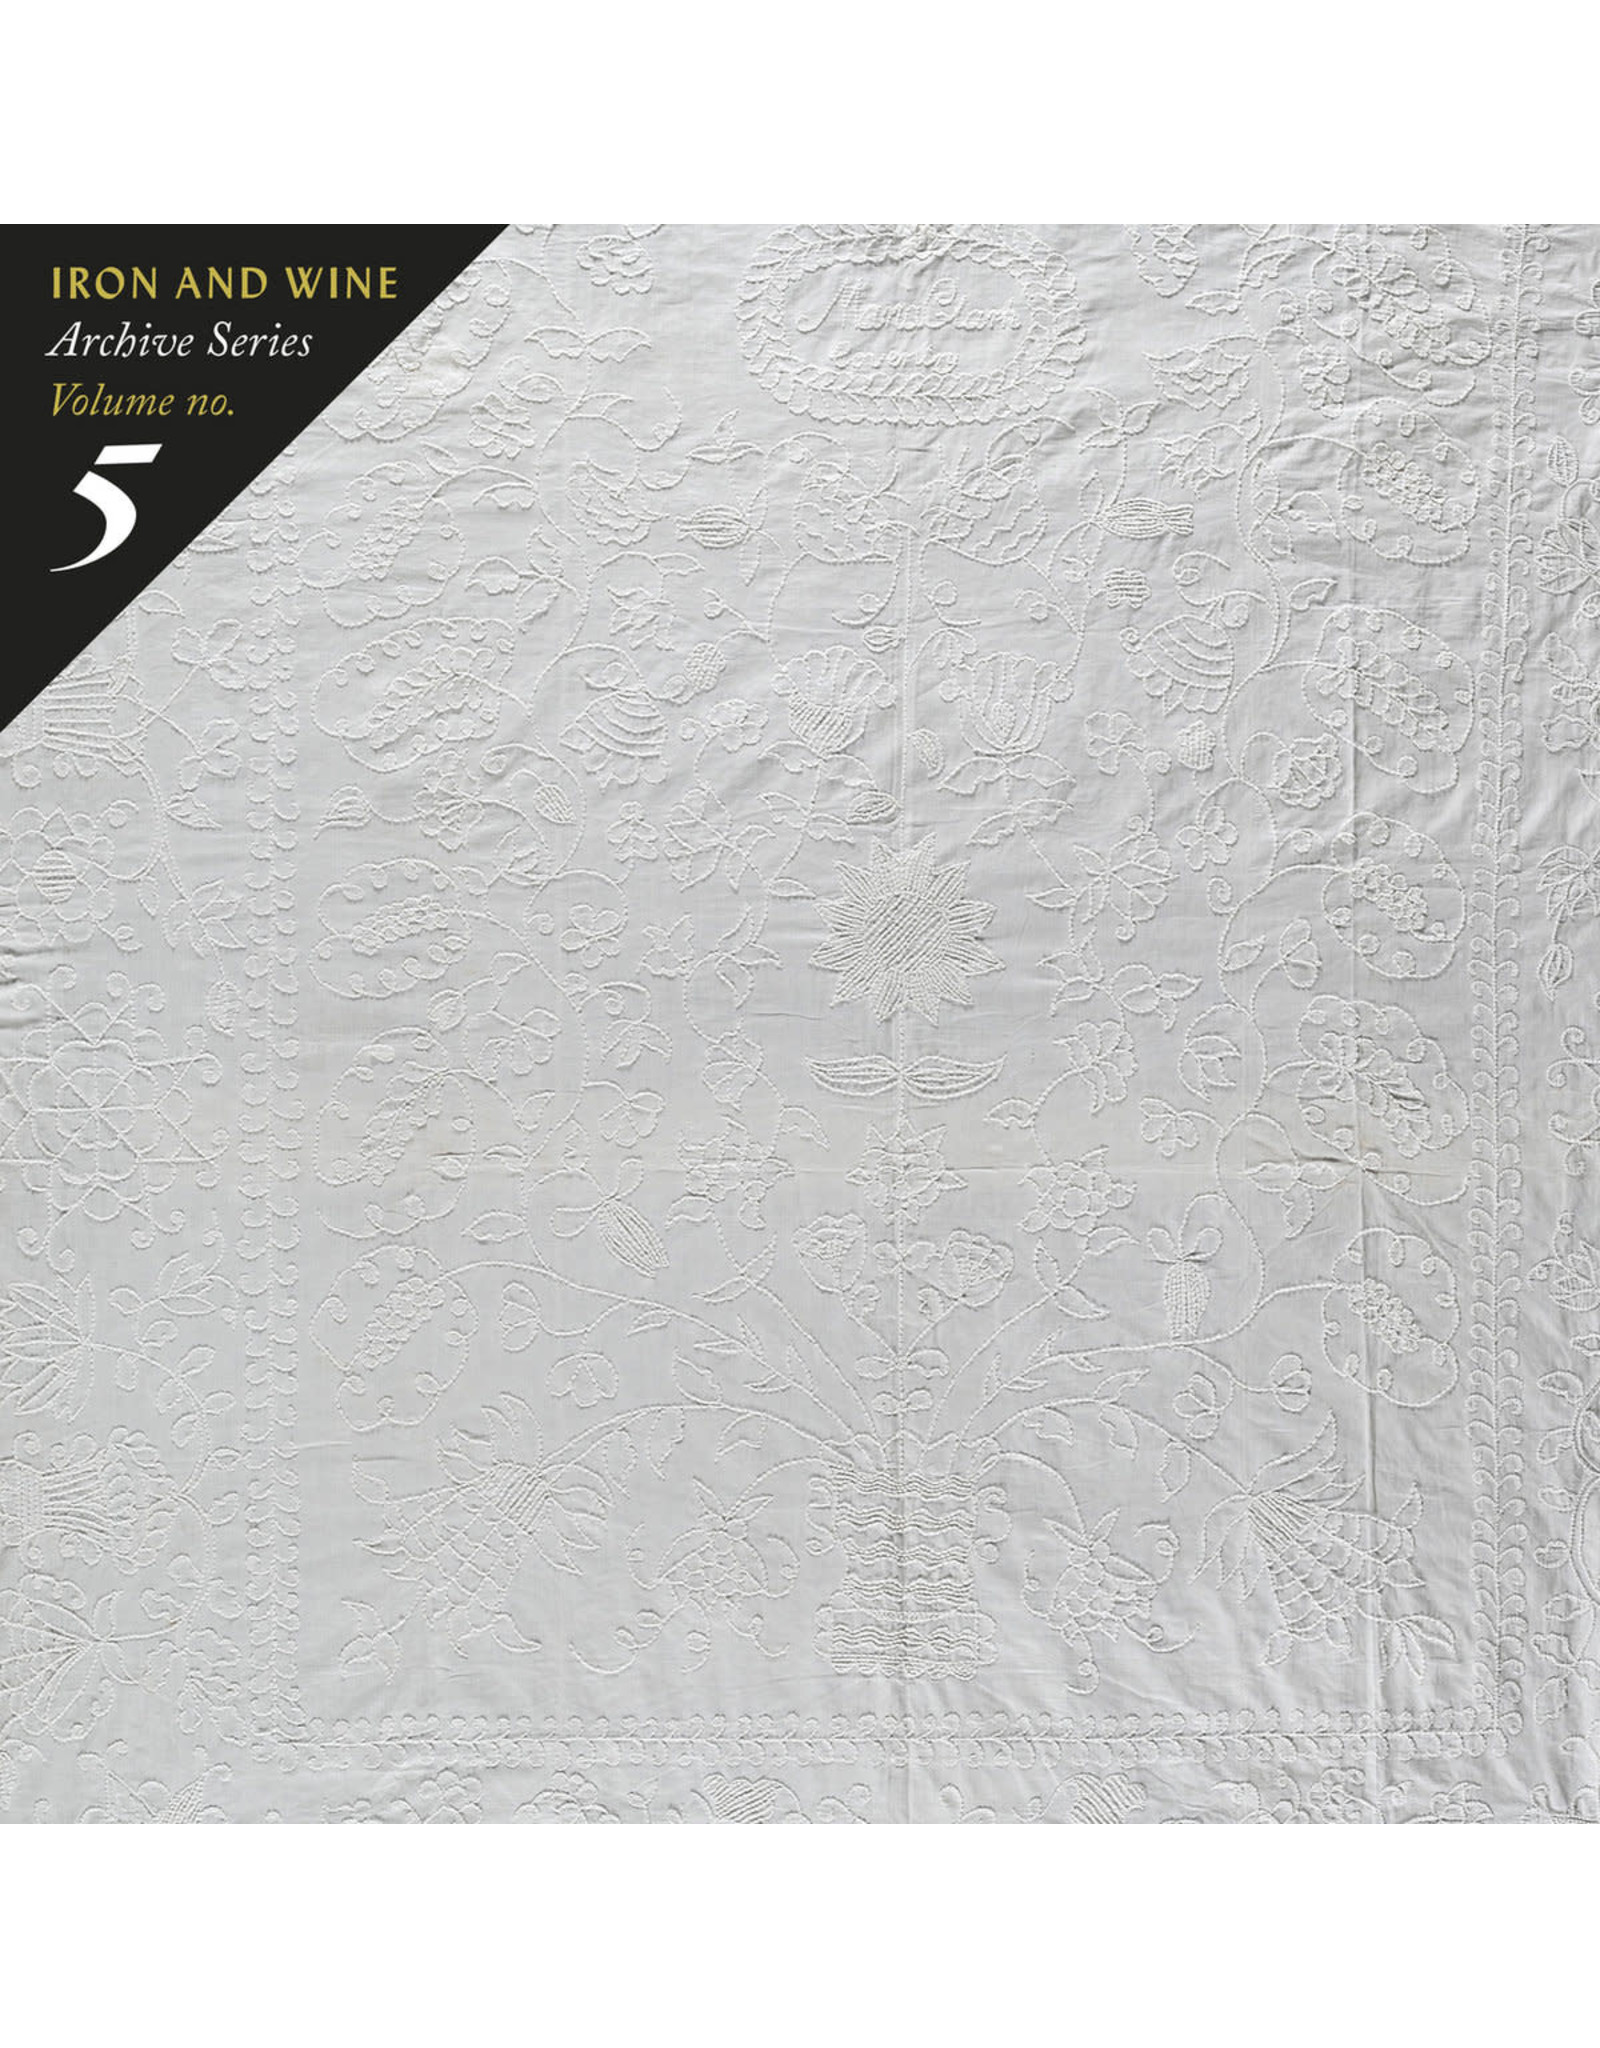 Iron & Wine - Archive Series Vol. 5: Tallahassee Recordings (Exclusive Gold Vinyl)